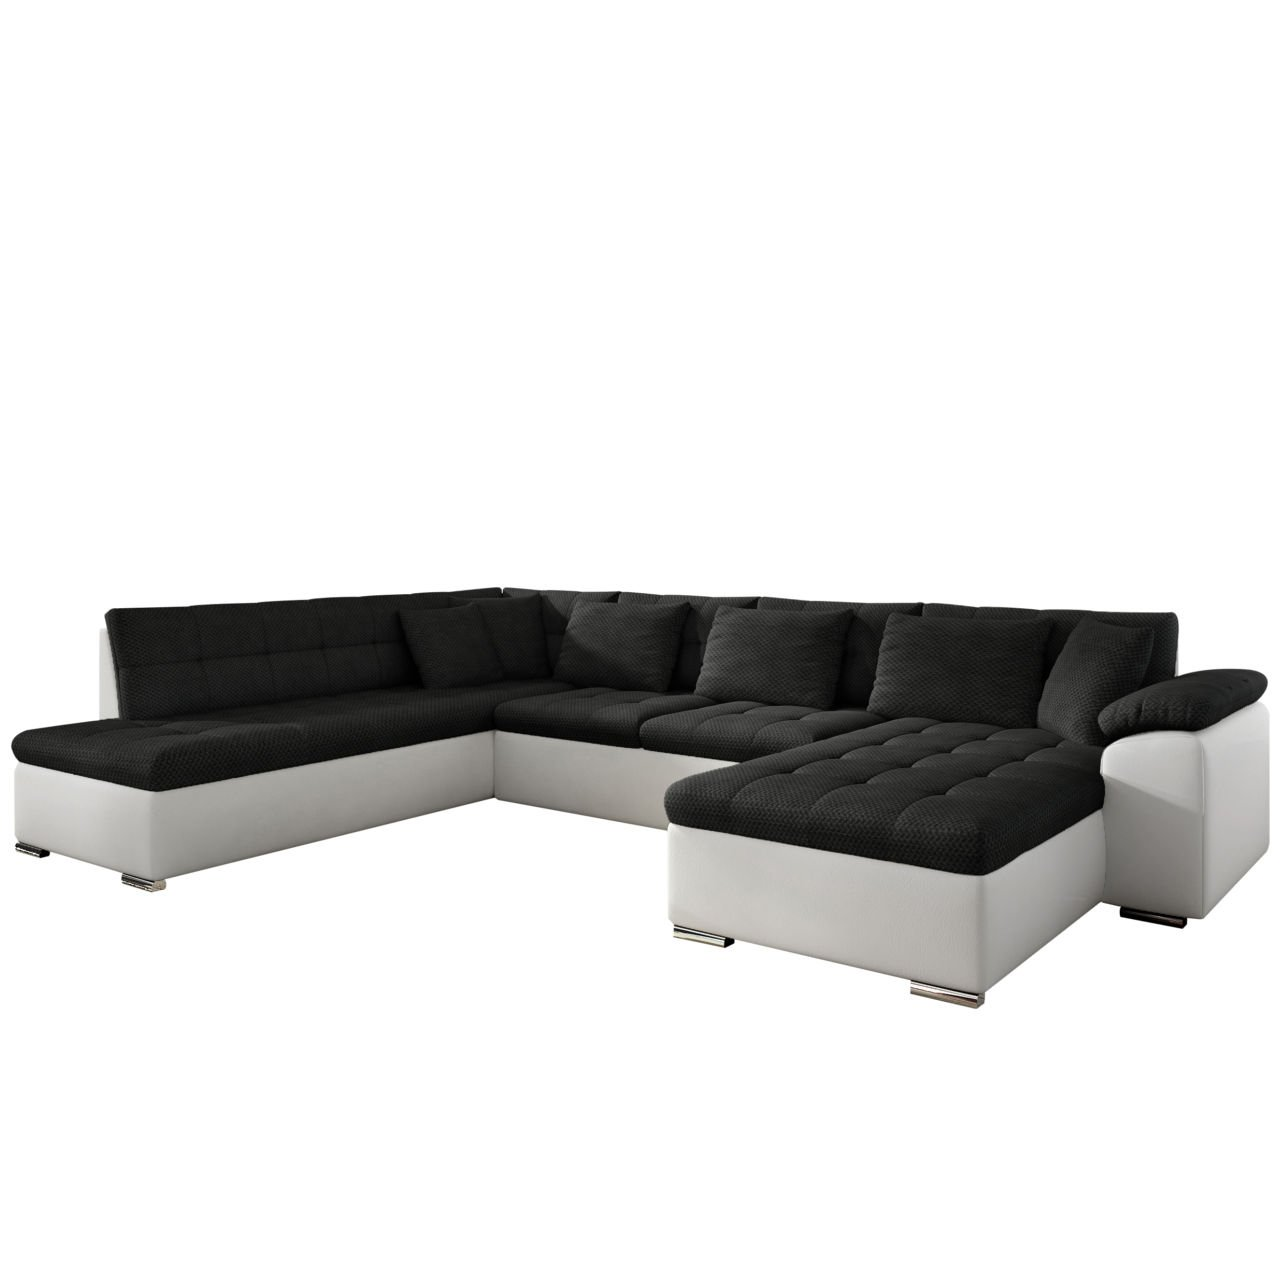 eckcouch ecksofa niko bis smart design sofa couch mit. Black Bedroom Furniture Sets. Home Design Ideas